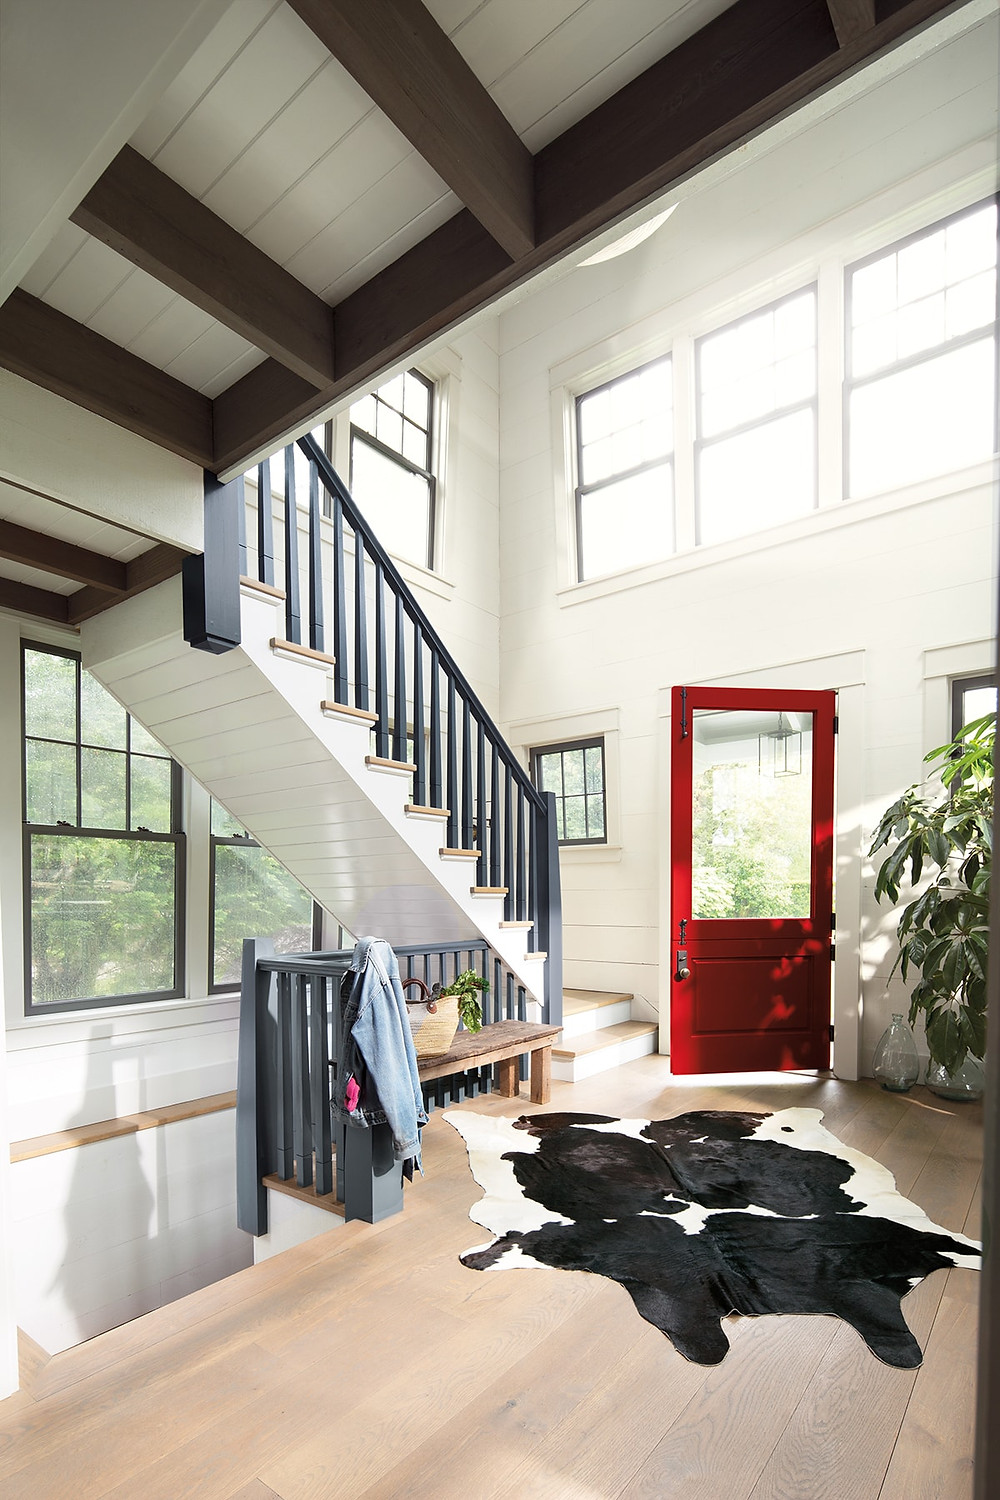 Red door against crisp white board walls and a staircase painted in grey - this is so classy and loving the cowhide rug that modernises the whole look! Benjamin Moore has revealed Caliente AF-290 as its highly anticipated Colour of the Year 2018. Unveiled alongside a corresponding palette consisting of 22 enlivening hues, this vibrant and charismatic shade of red is a bold yet soothing contemporary colour that oozes confidence.